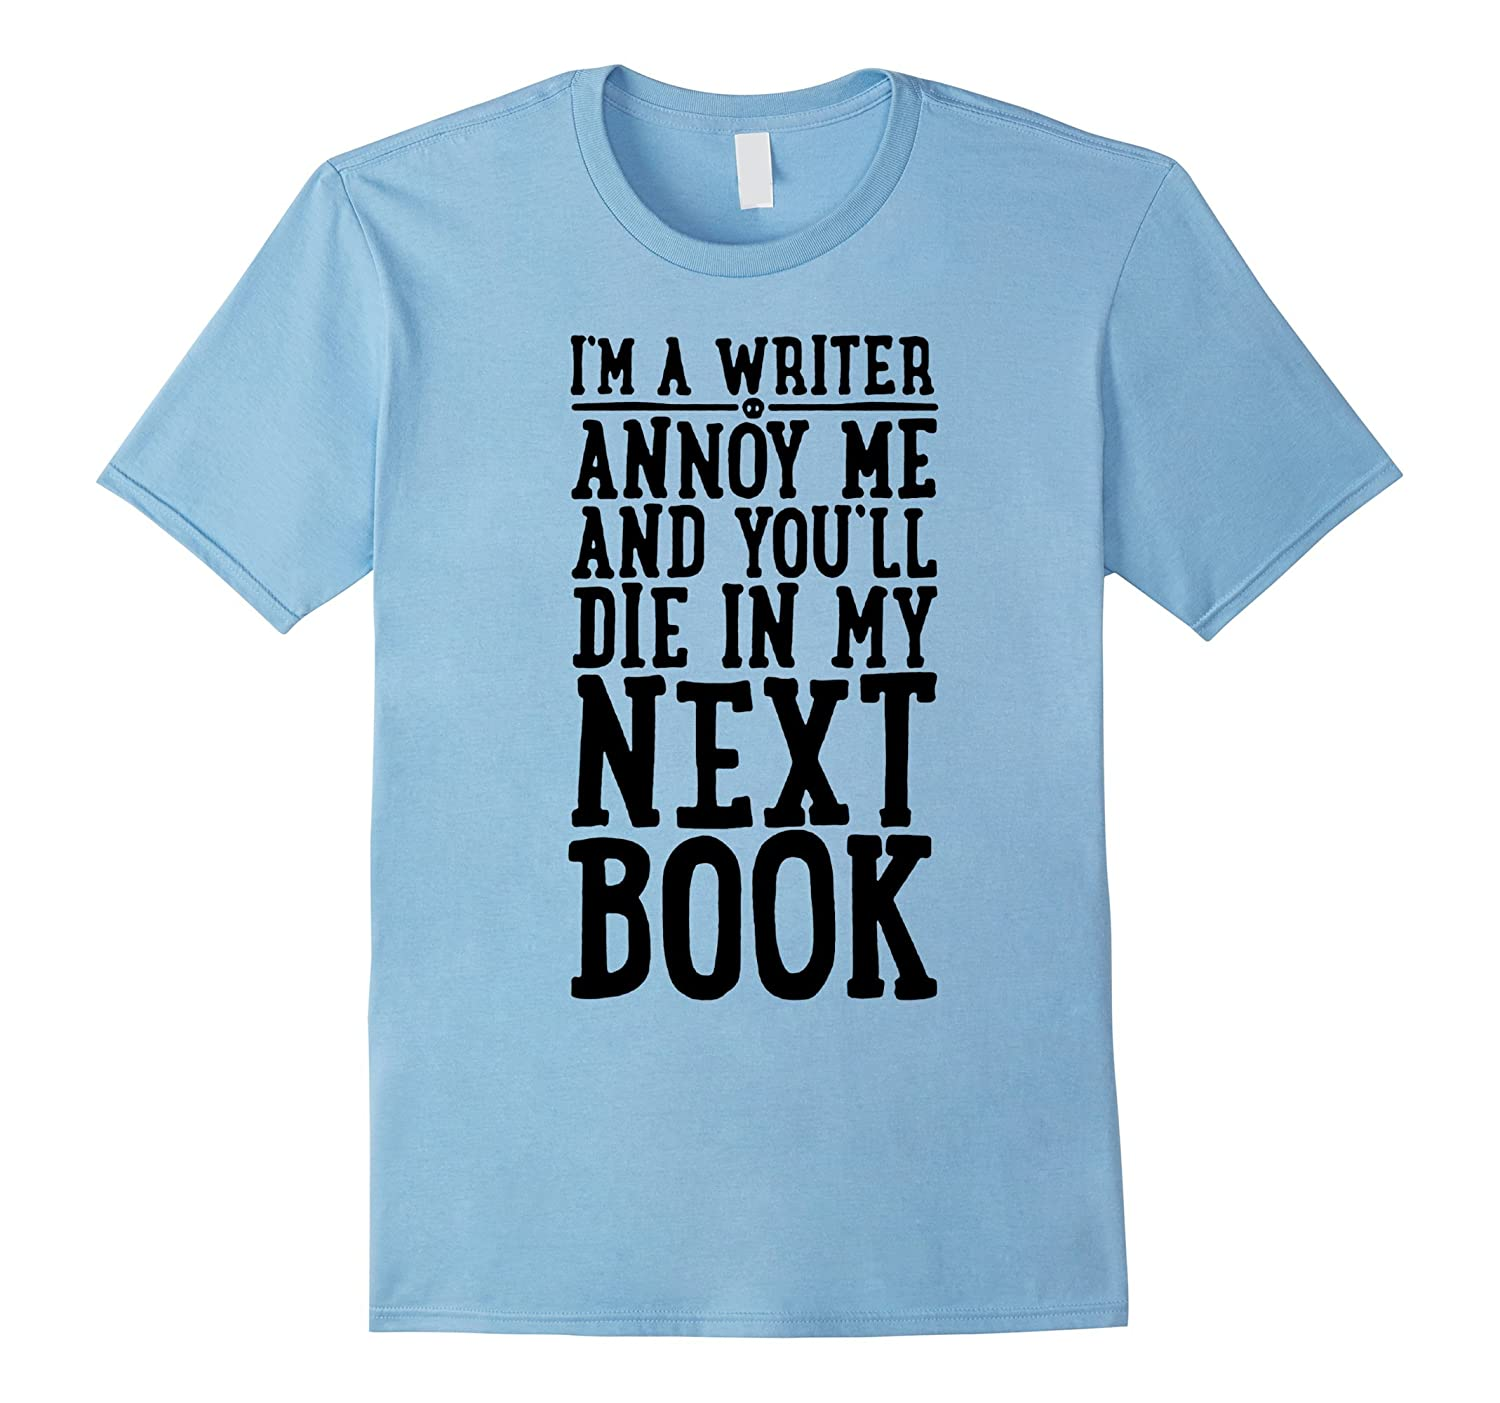 You're a writer annoy and I'll die in your next book tshirt-TH